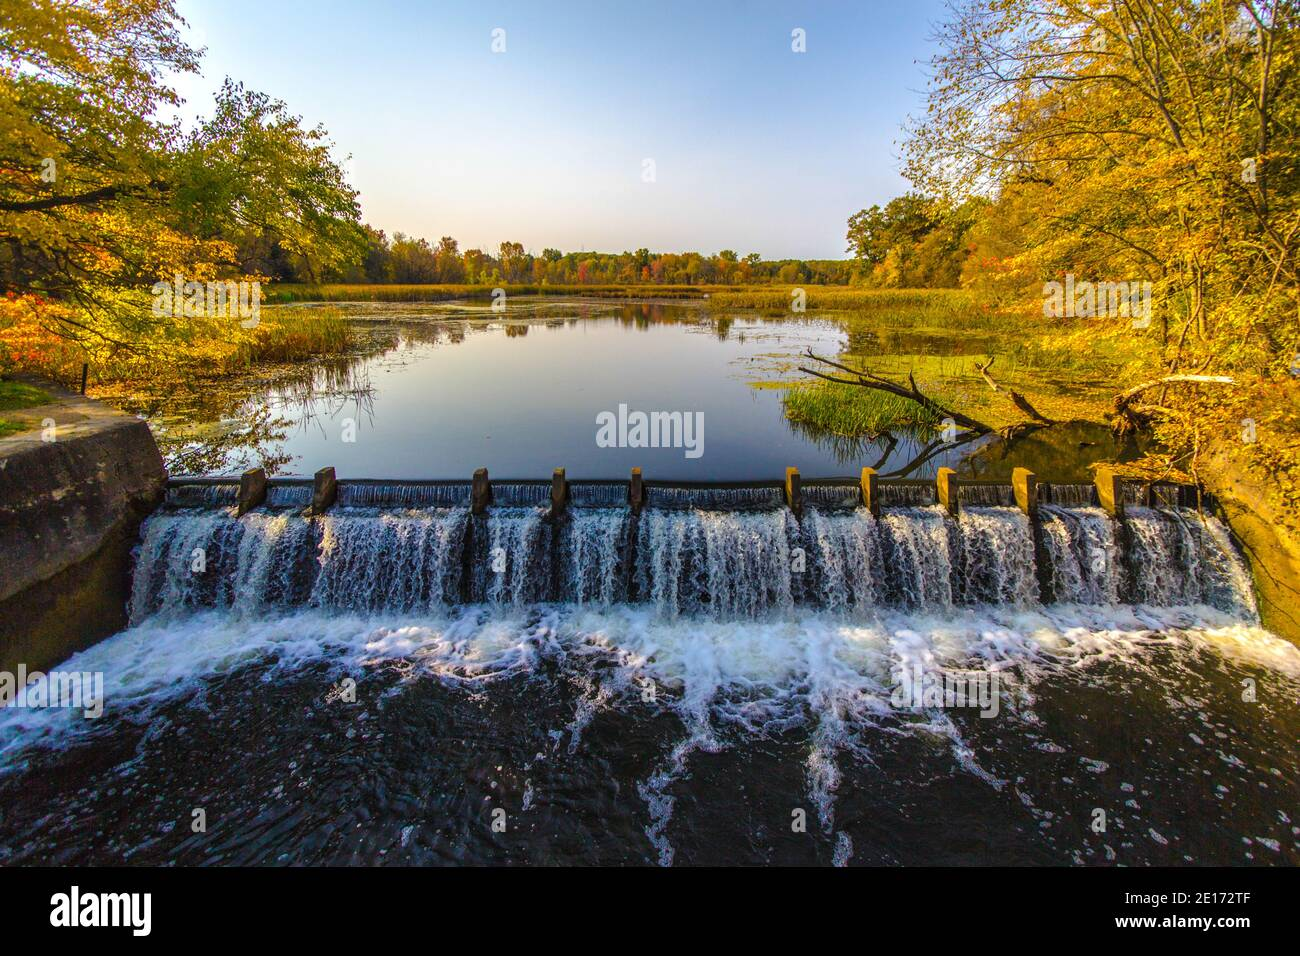 Dam on river creates a beautiful natural wetland with trees reflected in the reservoir. Stock Photo